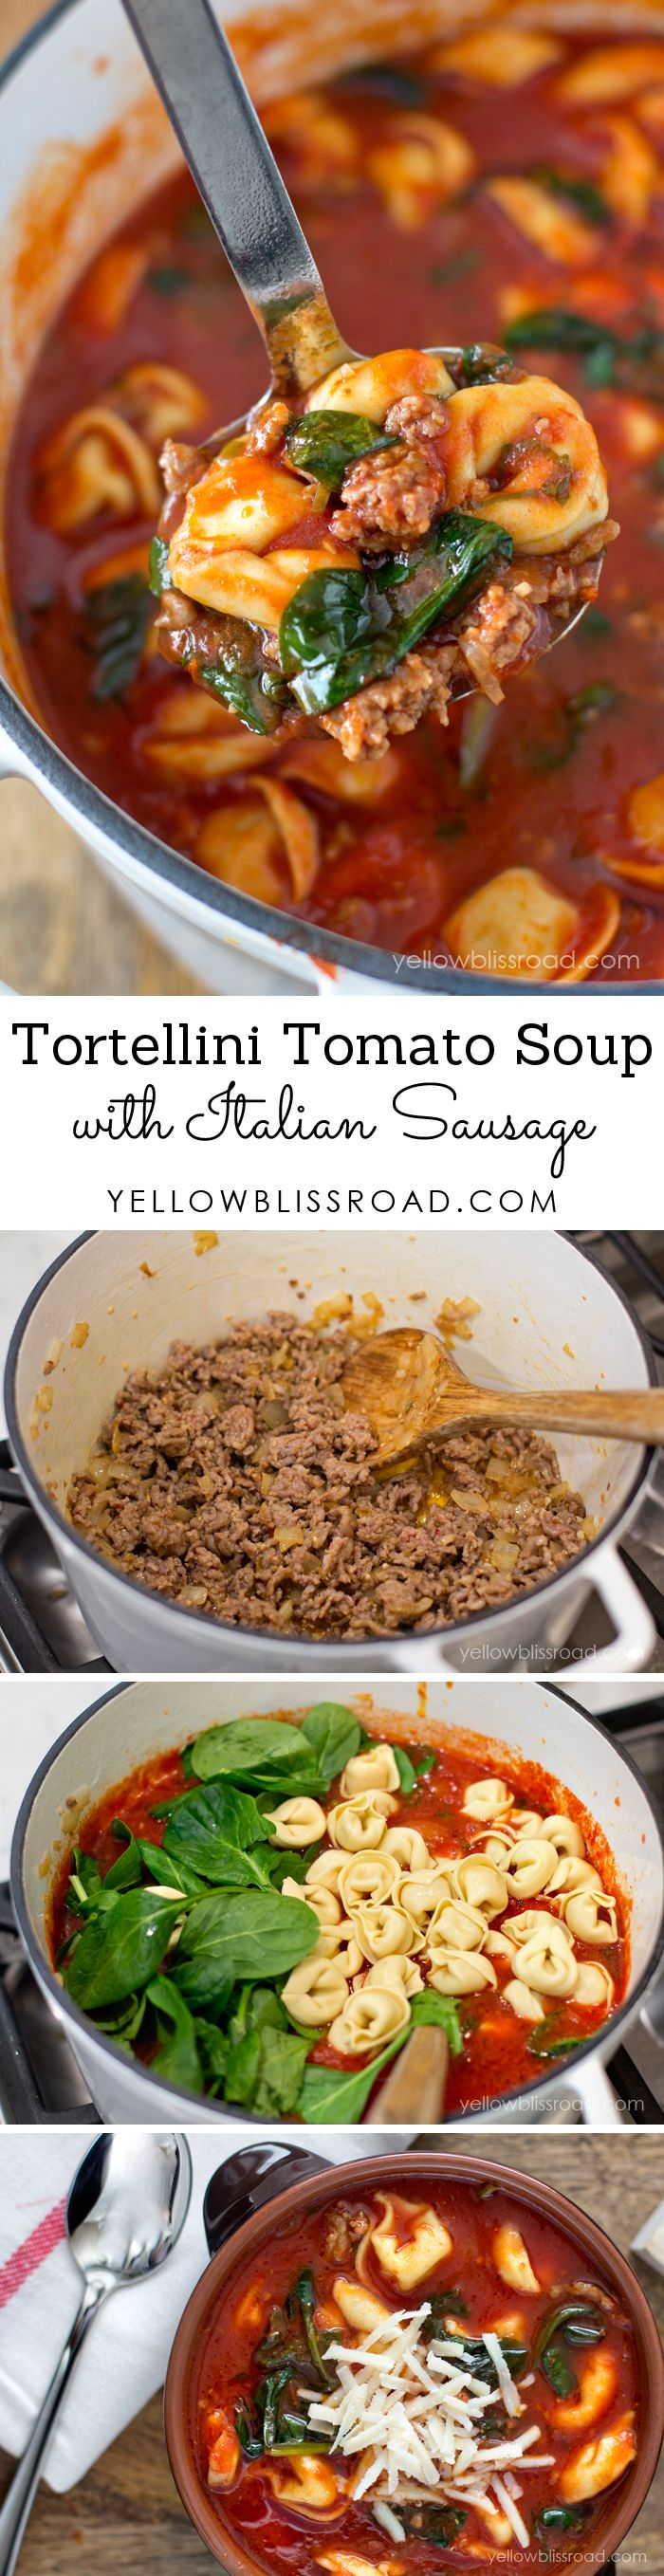 Tortellini Soup with Italian Sausage & Spinach | Comfort Food | Weeknight Meal via @yellowblissroad